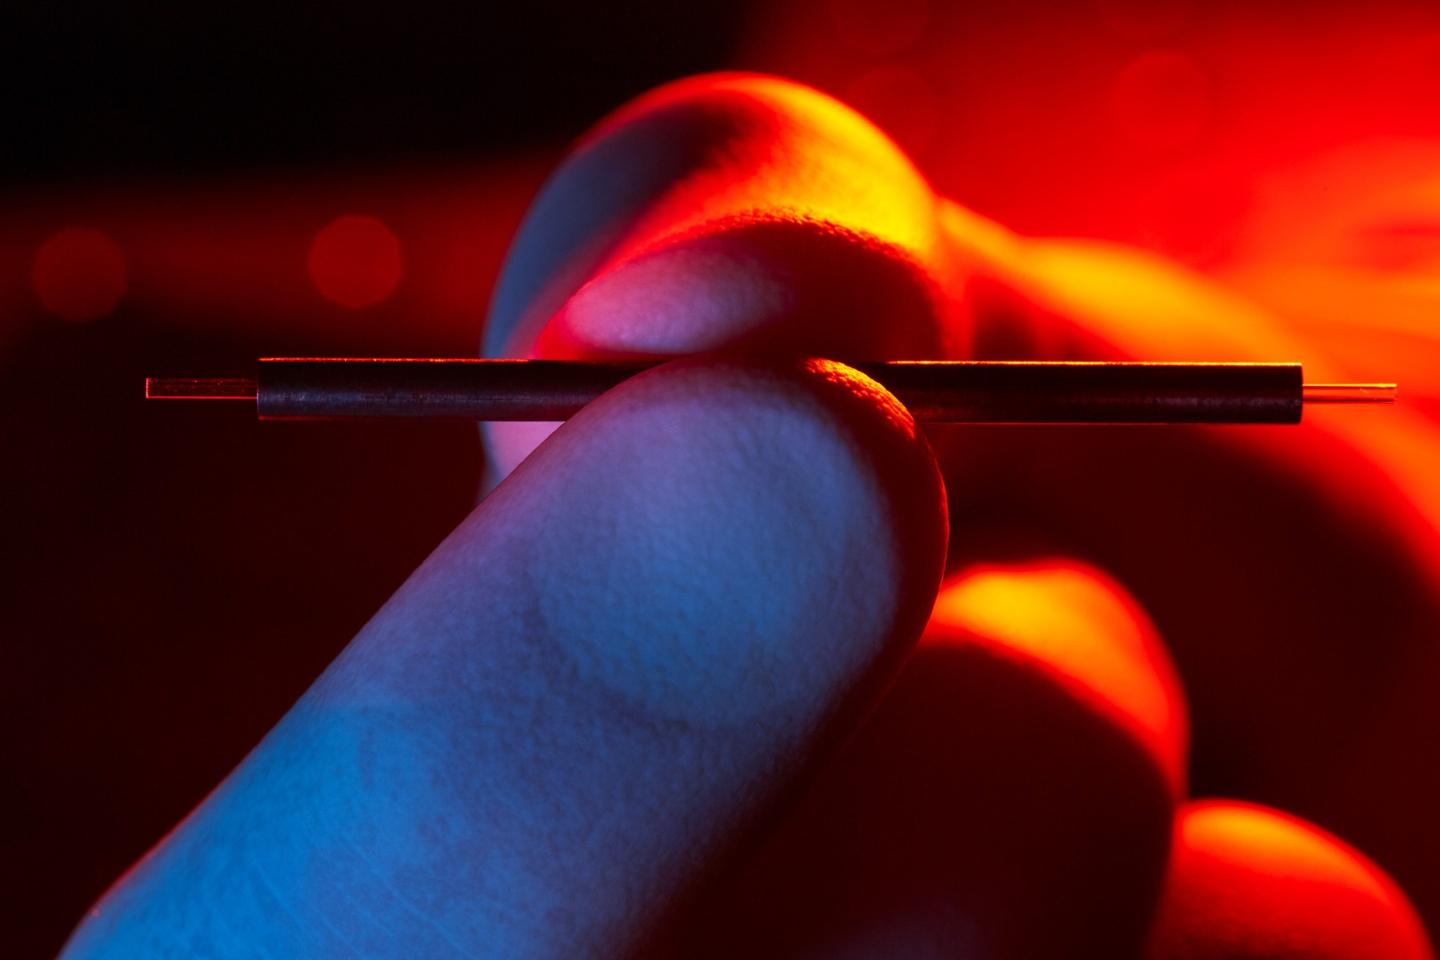 Scientists may have found a way to exploit high-frequency electromagnetic waves to miniaturize particle accelerators by a factor of 100 or more